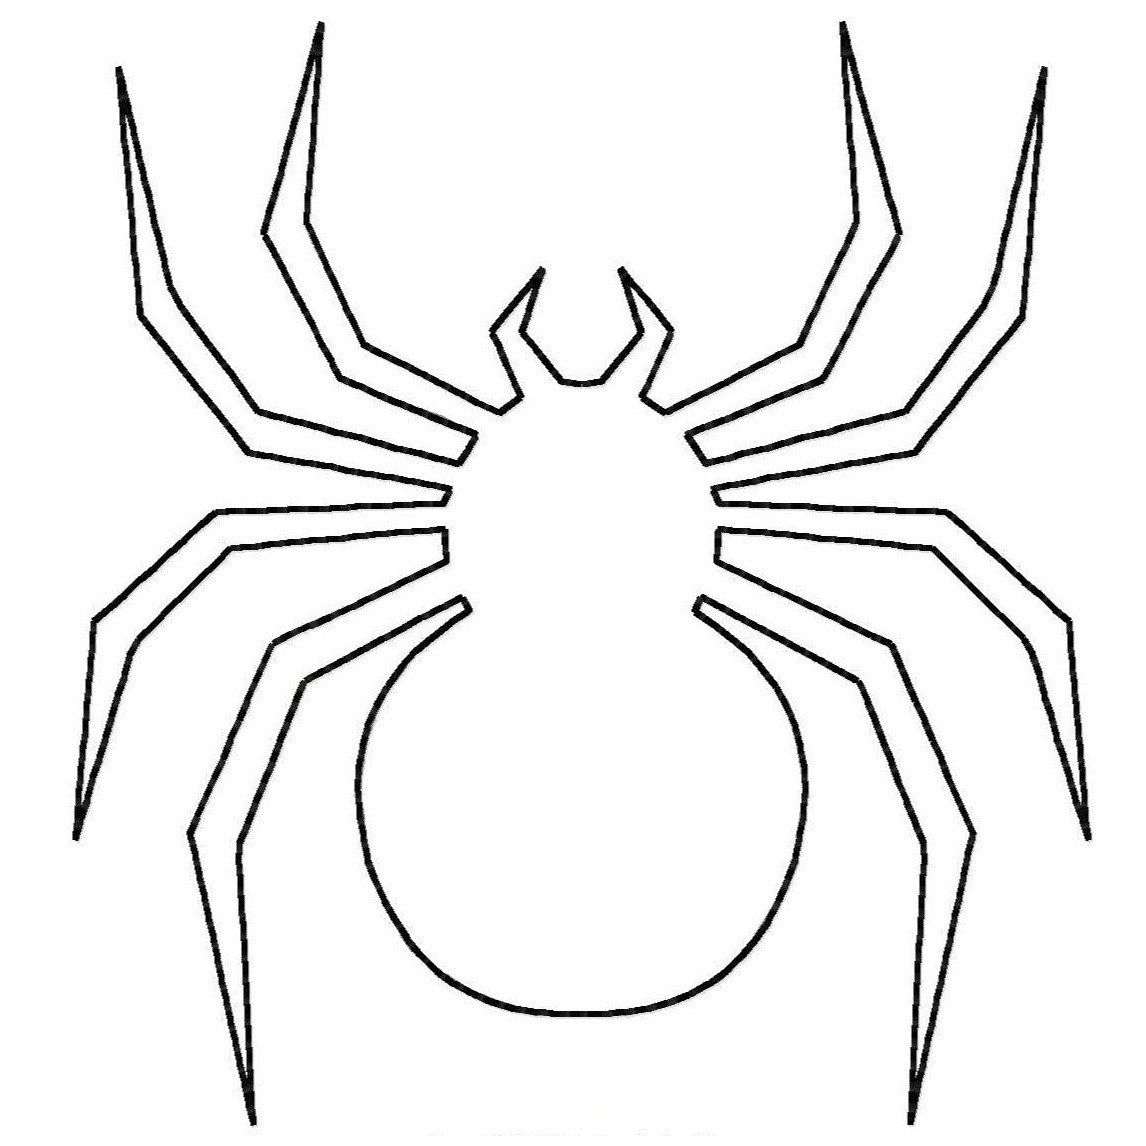 Coloring Pages Coloring Page Spider anansi the spider coloring page az pages animal for all ages